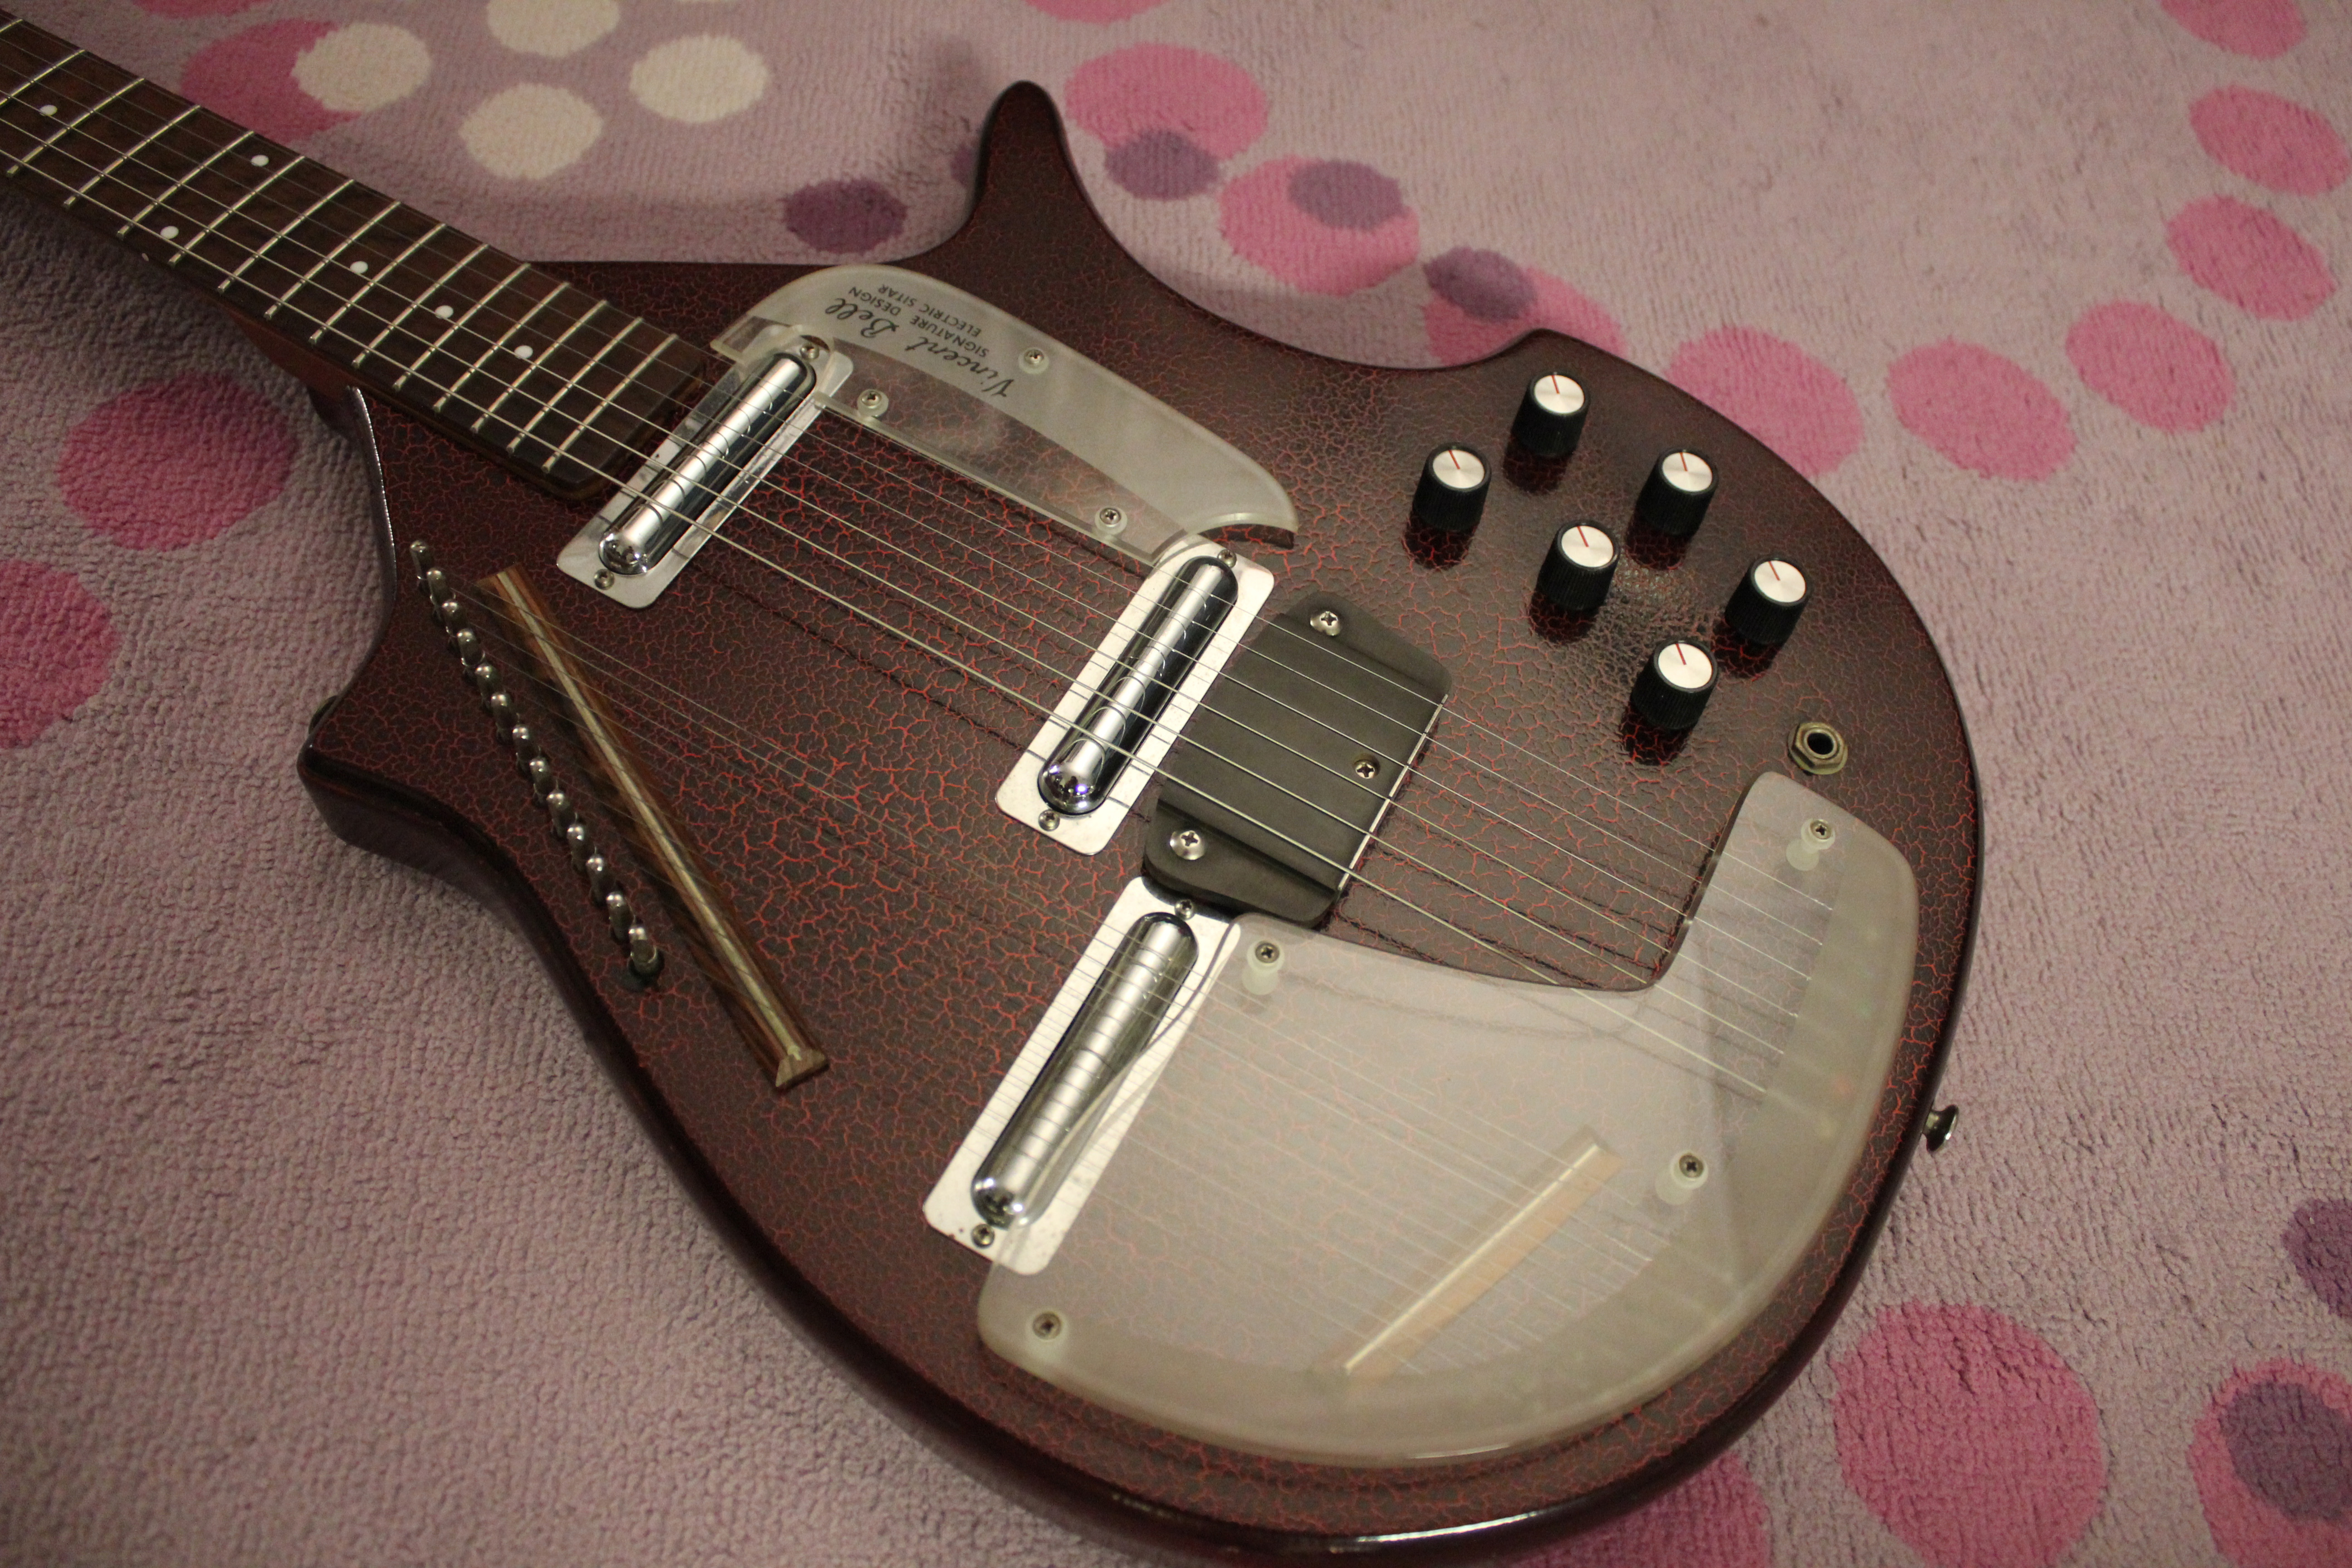 for today s in sound 1967 coral danelectro electric sitar model 3s18 drowning in guitars. Black Bedroom Furniture Sets. Home Design Ideas